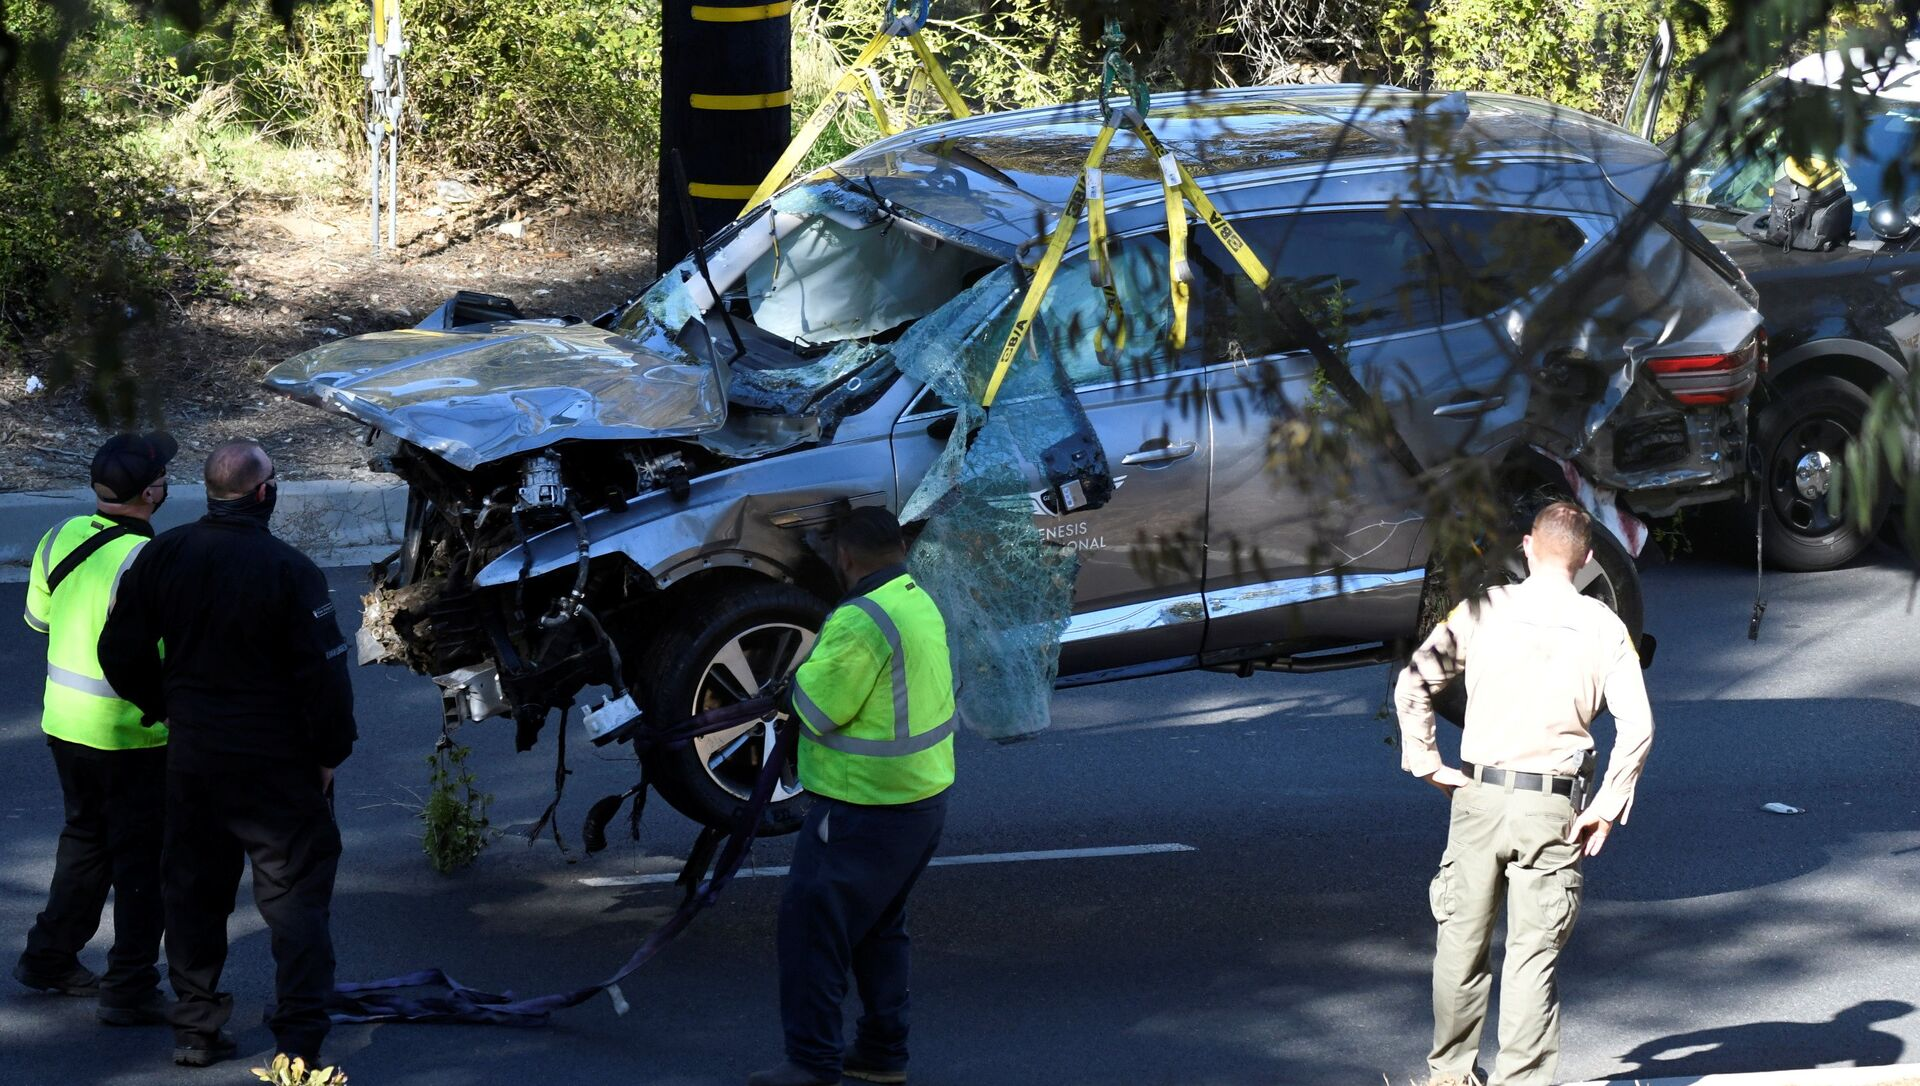 The vehicle of golfer Tiger Woods, who was rushed to hospital after suffering multiple injuries, is lifted by a crane after being involved in a single-vehicle accident in Los Angeles, California, U.S. February 23, 2021. - Sputnik International, 1920, 24.02.2021